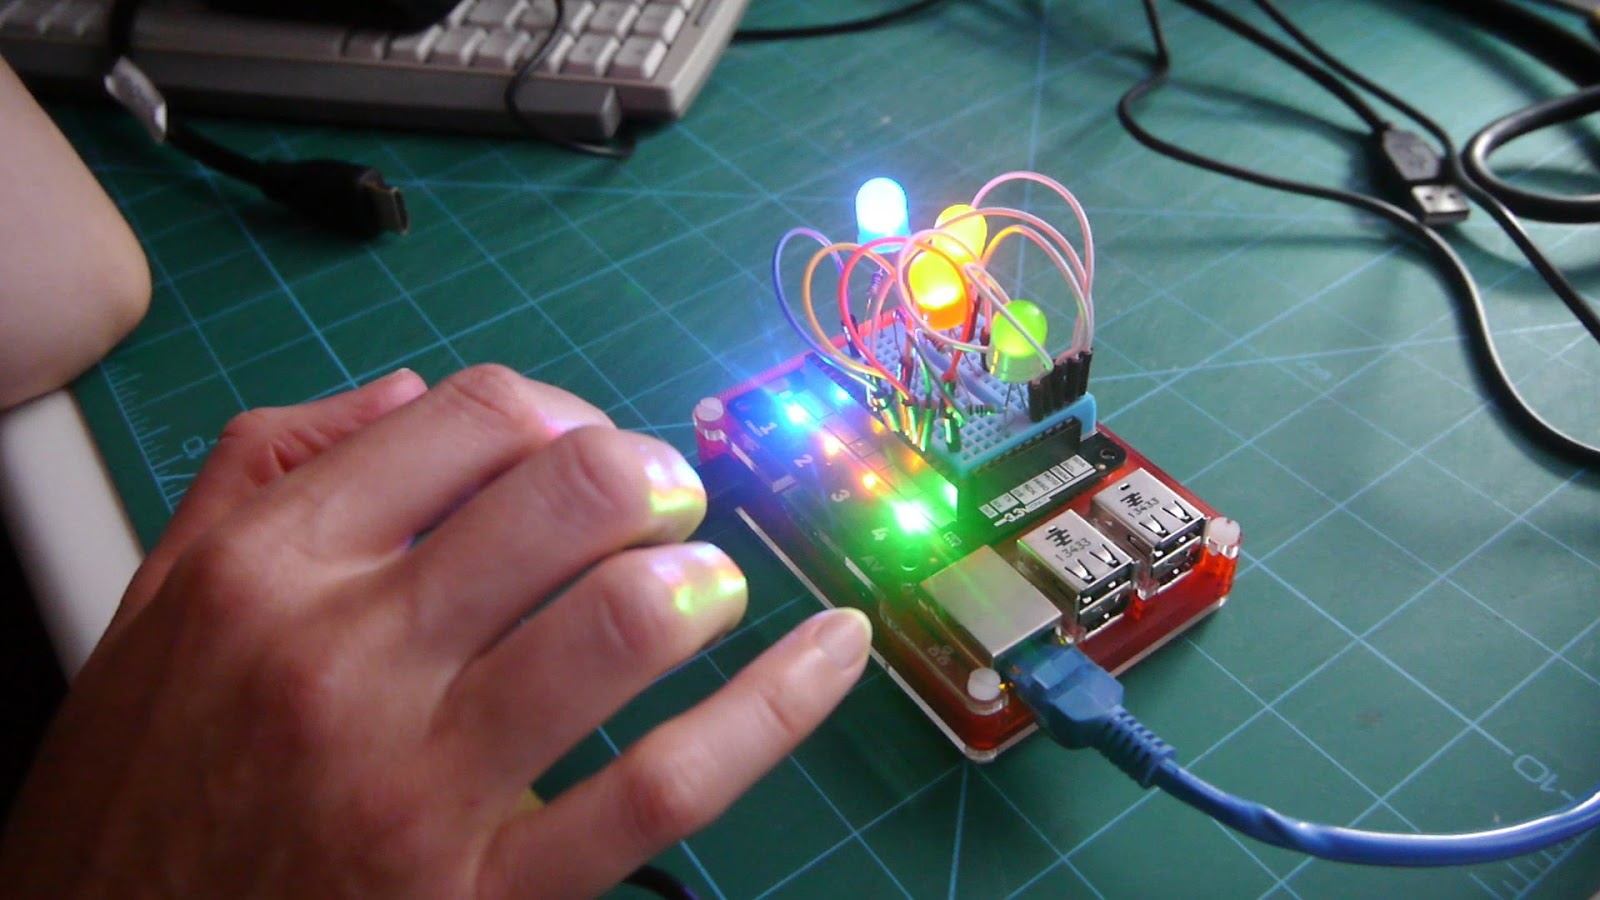 Simon Says Game Made With A Raspberry Pi And Pimoroni Explorerhat Breadboard Wire Kit Watterott Electronic Richard Hayler Has Produced By Wiring Up Some Leds Onto The Of An Then Writing Necessary Python Code